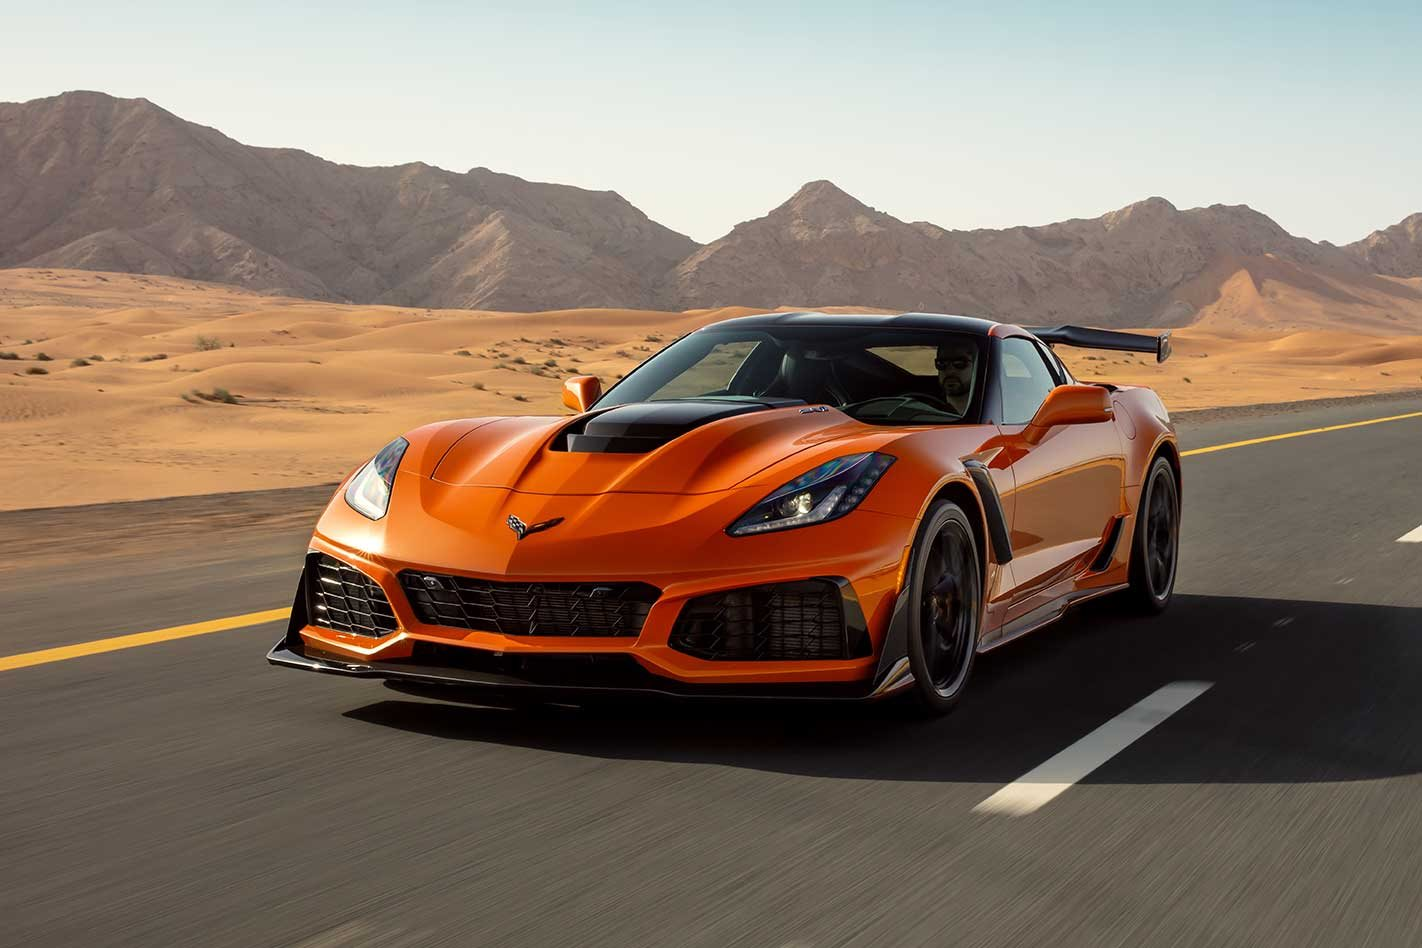 corvette zr1 chevrolet performance production fastest cars america ford hp power